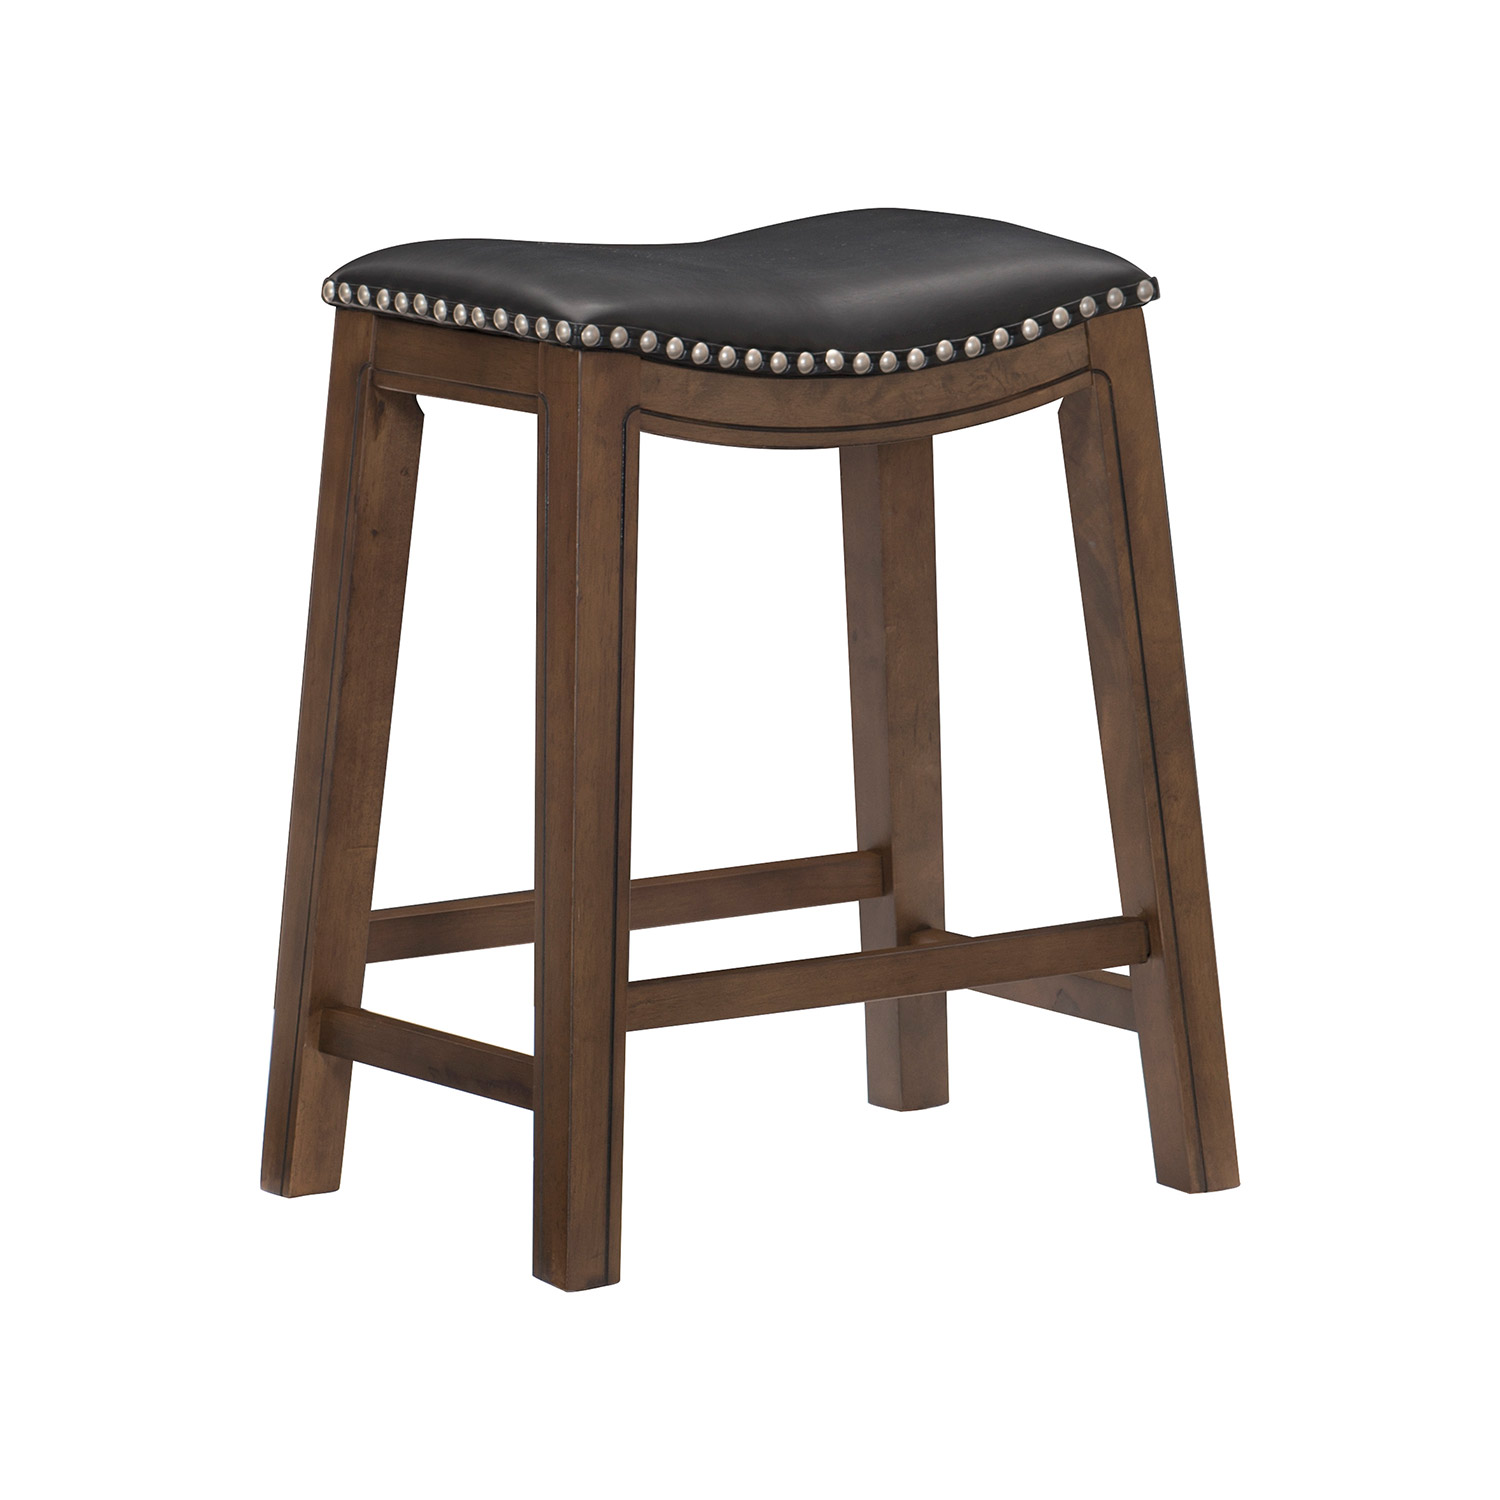 Homelegance 24 SH Stool - Black